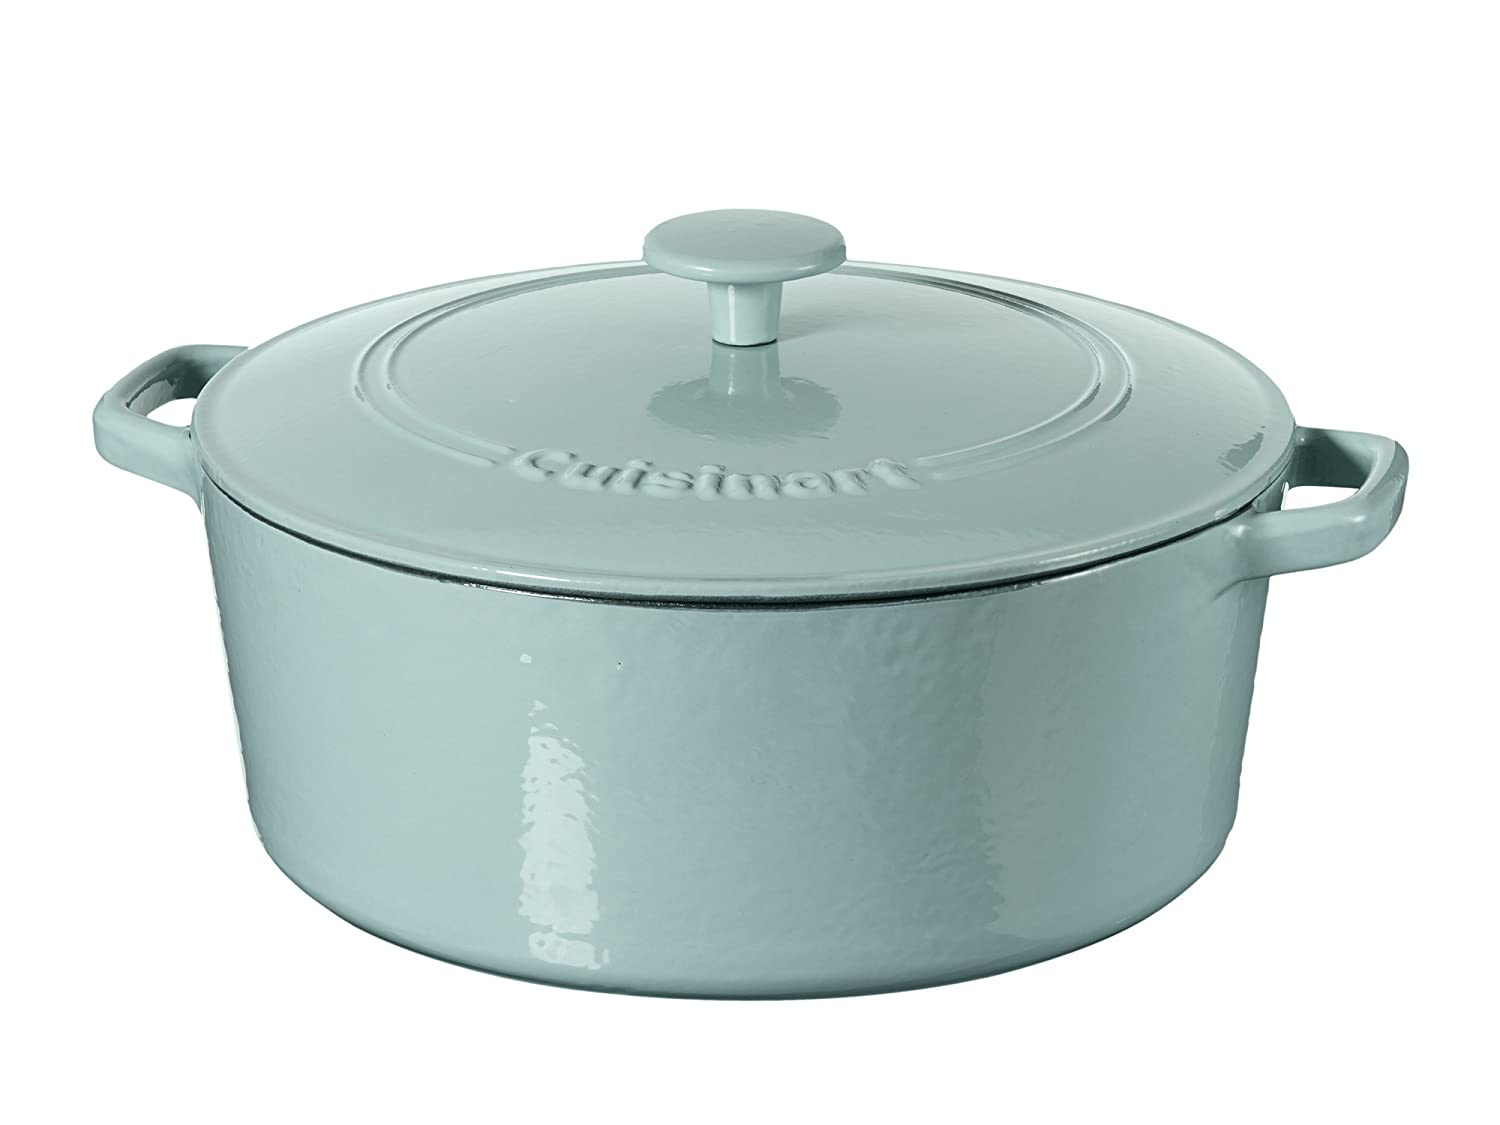 Today only:Save on Cast Iron Cookware from Cuisinart